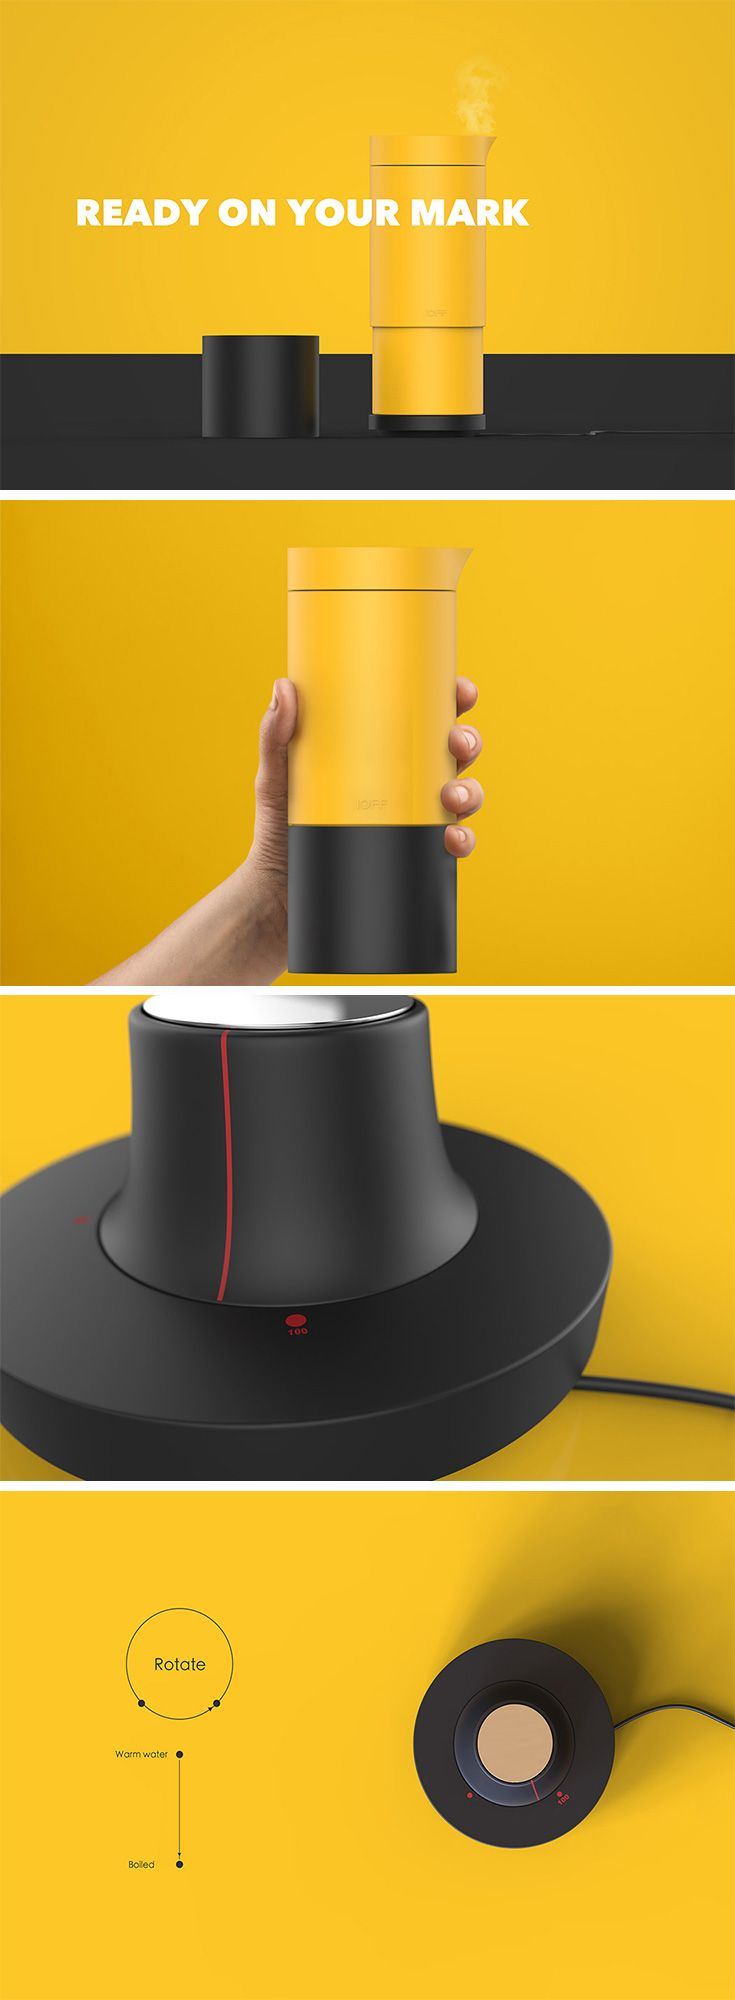 The 10FF flask kettle features a miniature hob that gives it the ability to adjust temperature.